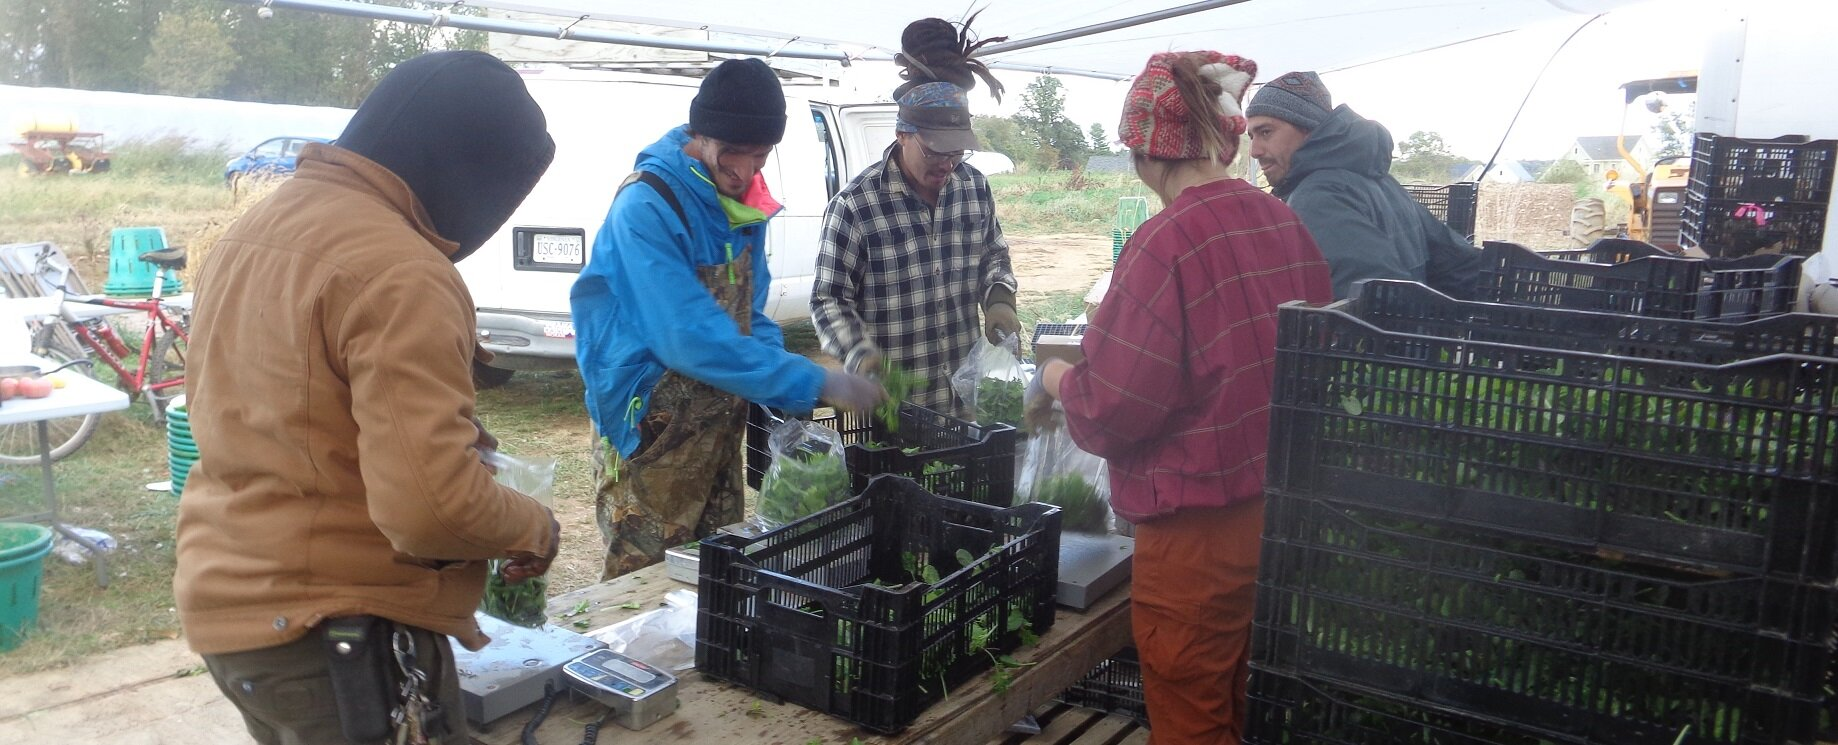 Second Spring Farm Working At Ssf